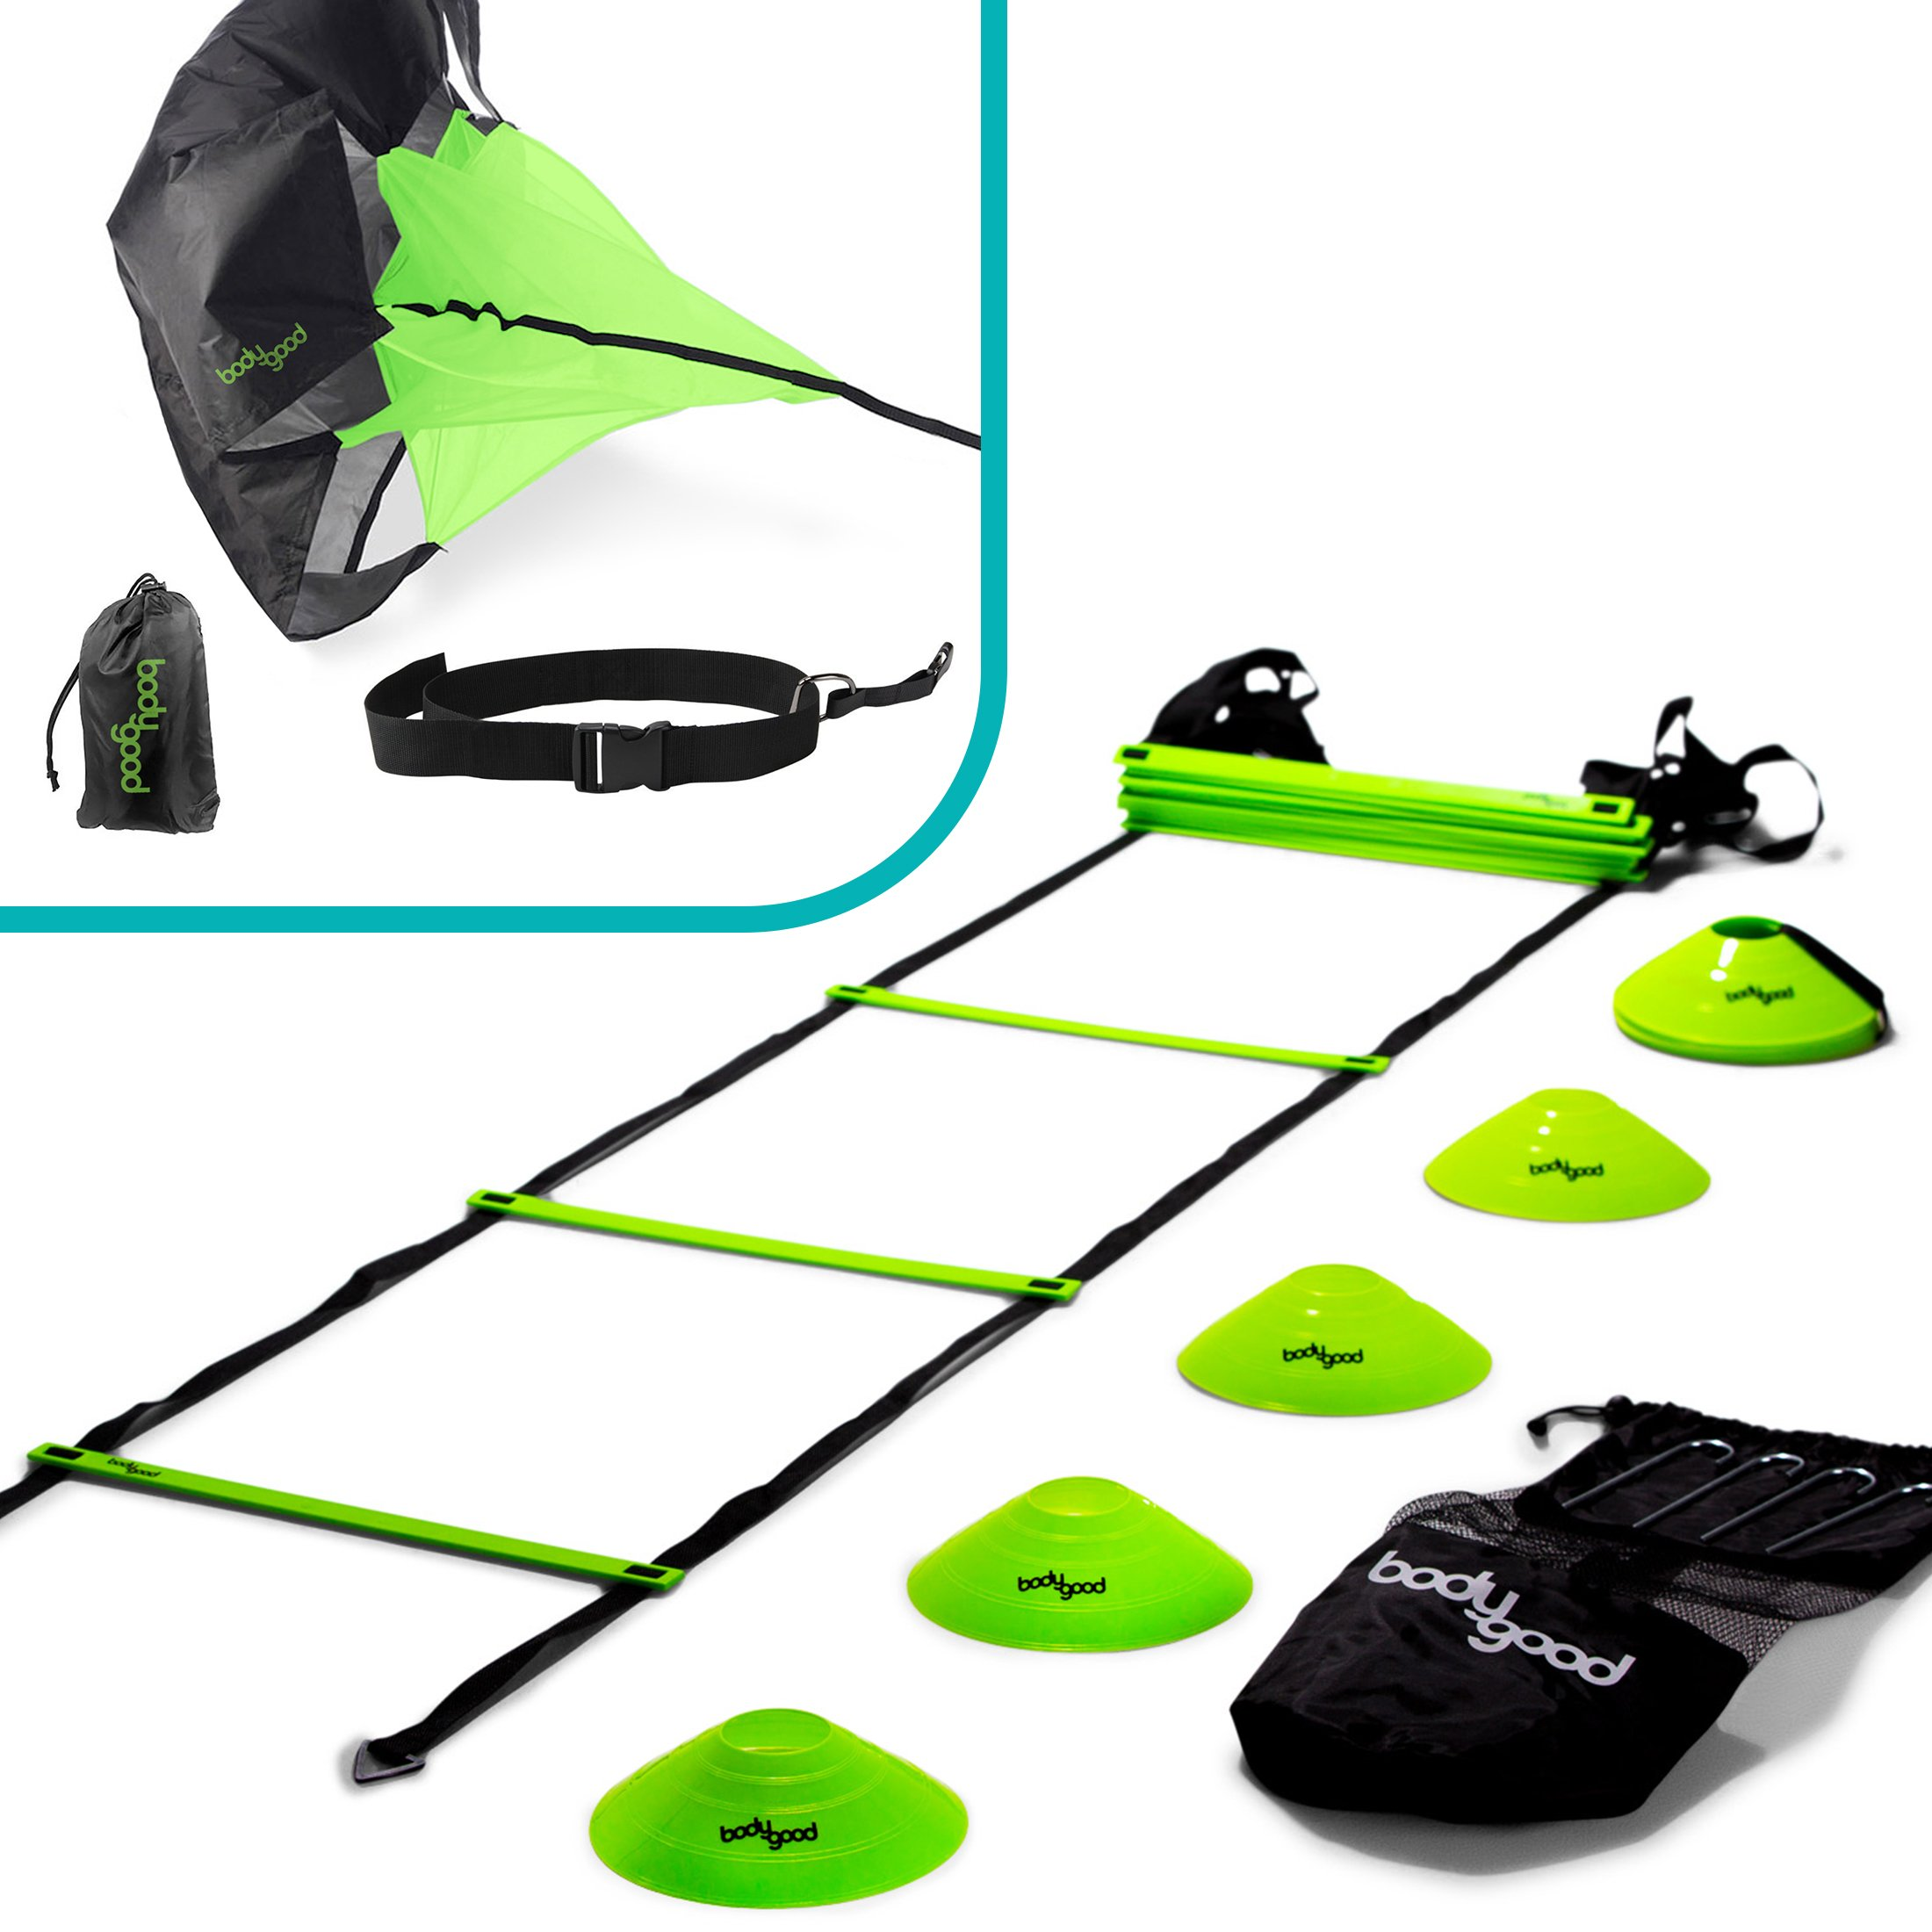 BodyGood Speed & Agility Training Set. Includes Agility Ladder, Resistance Running Parachute, 15 Sports Cones & Bag. Use Equipment to Improve Footwork for Any Sport. Comes with Instructional PDF